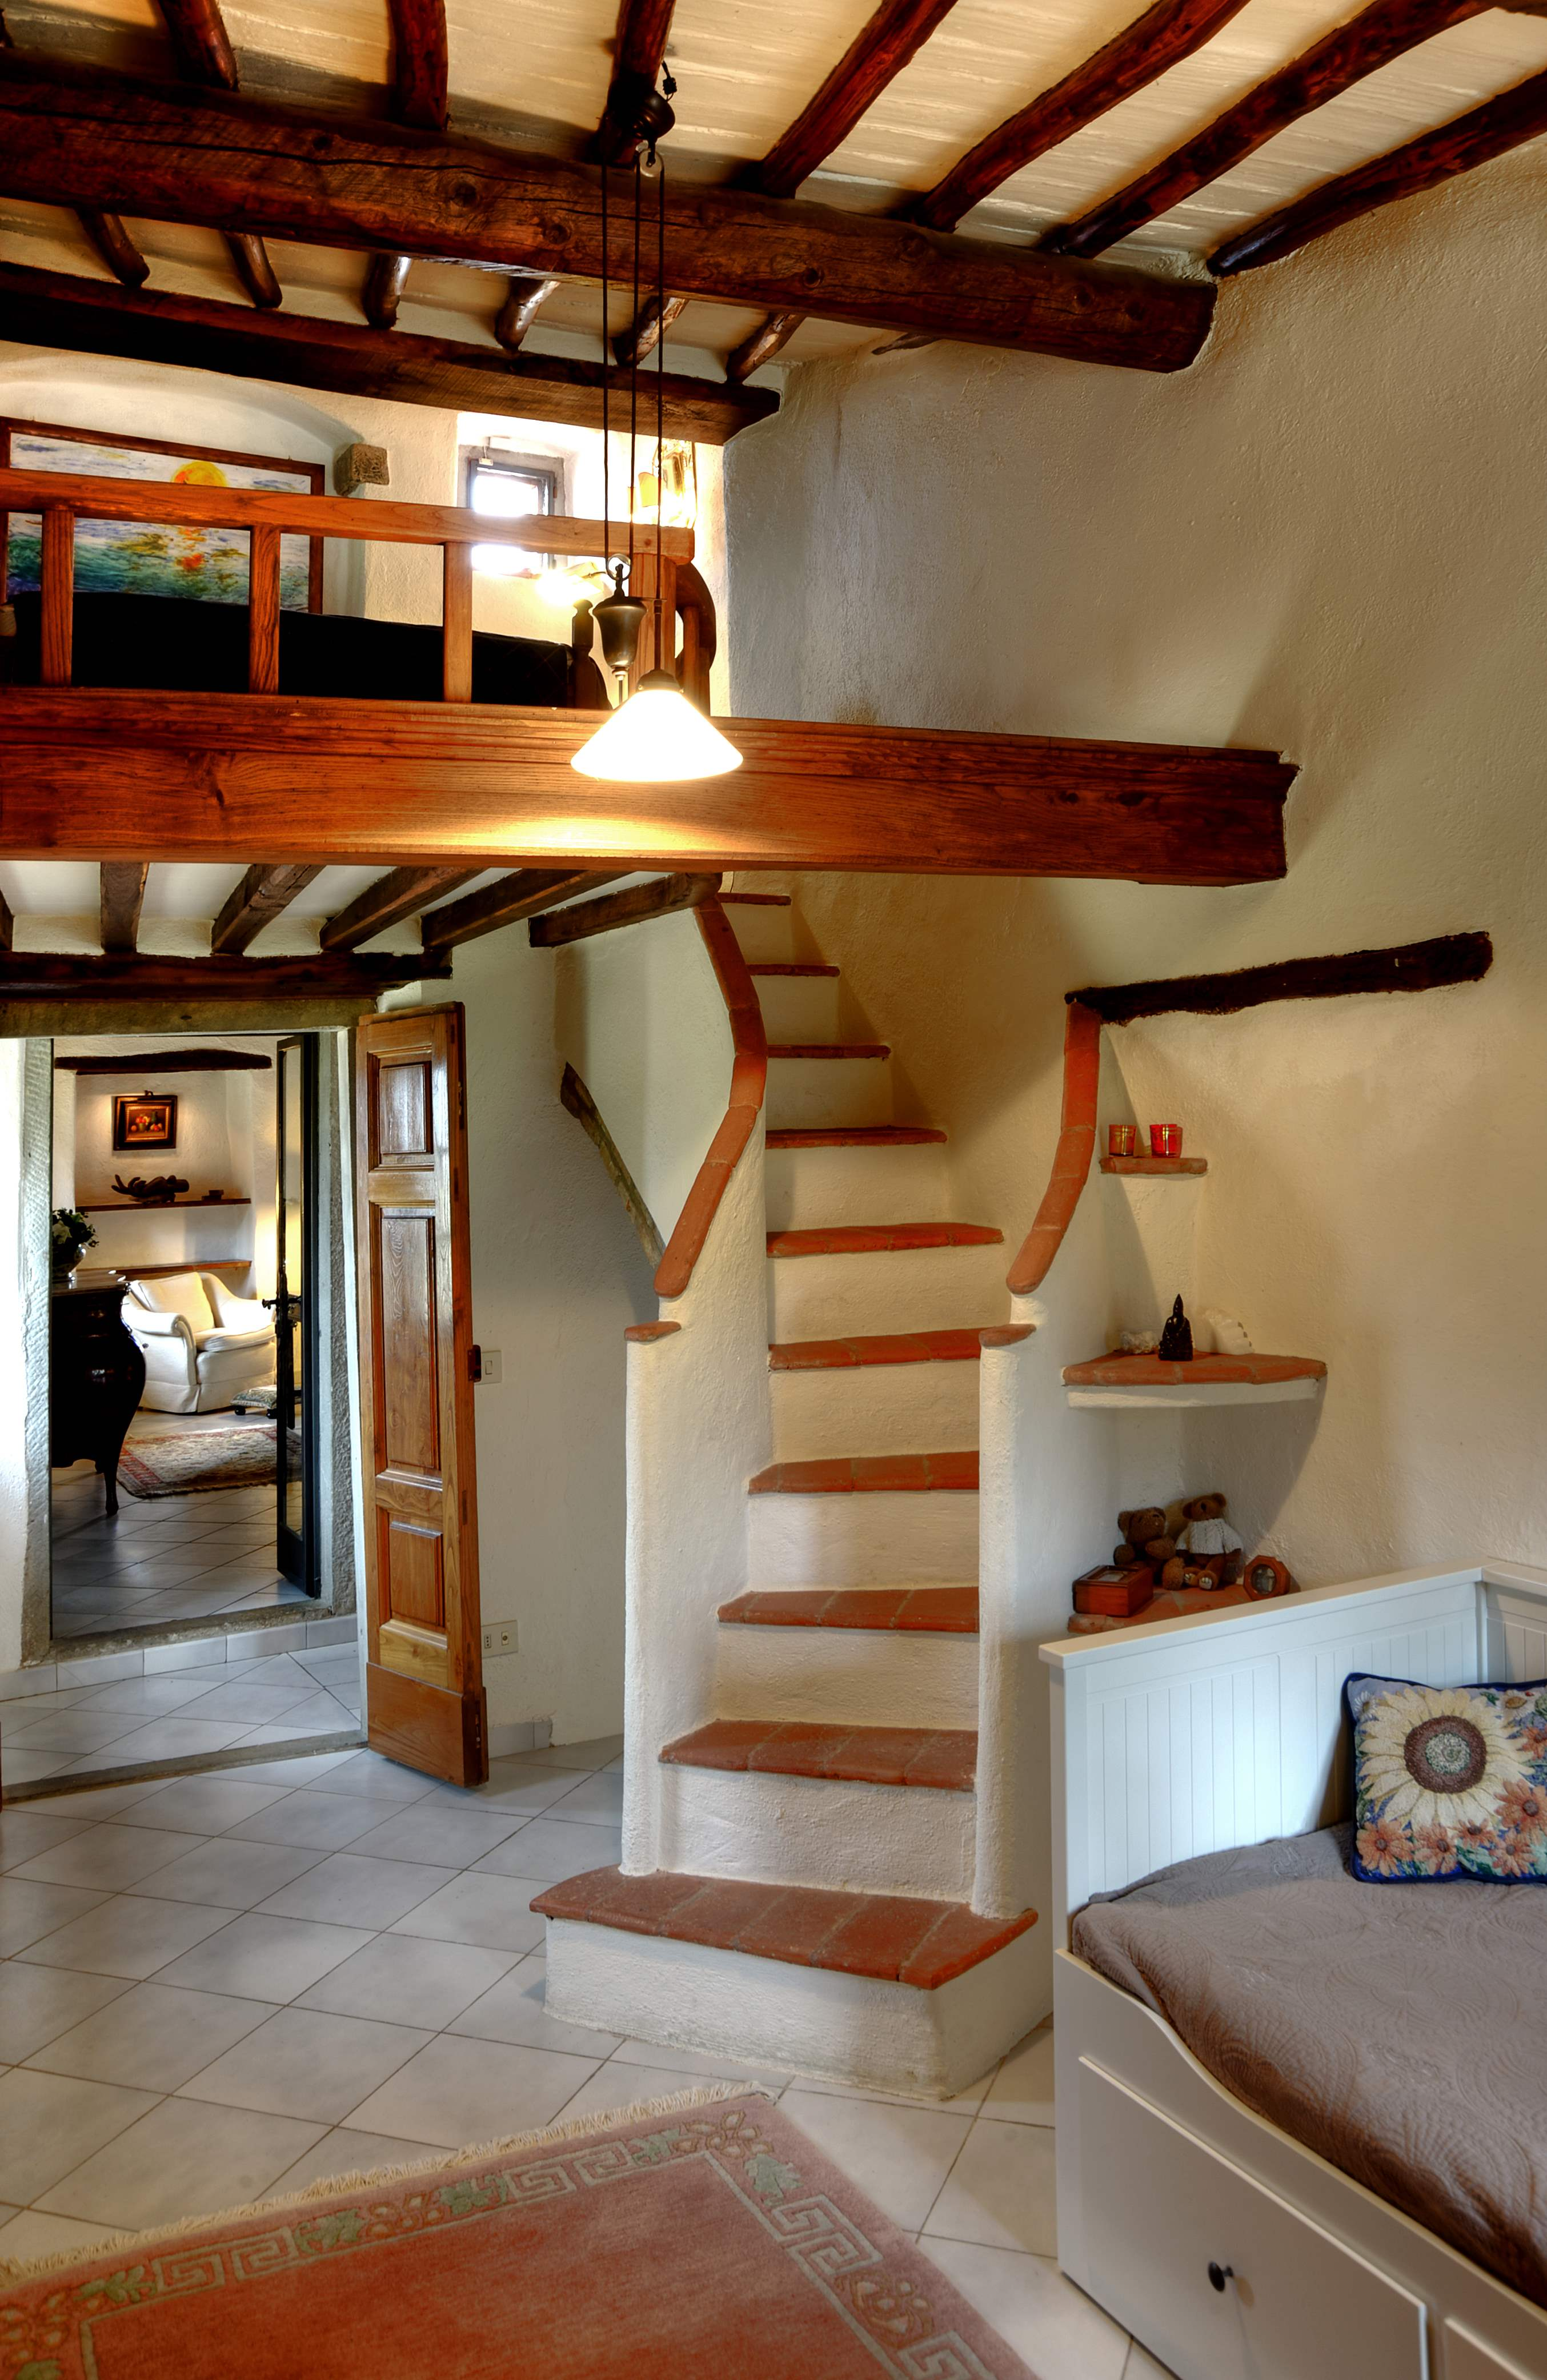 Villa Campana, 5 bedroom villa in Chianti & Countryside, Tuscany Photo #11